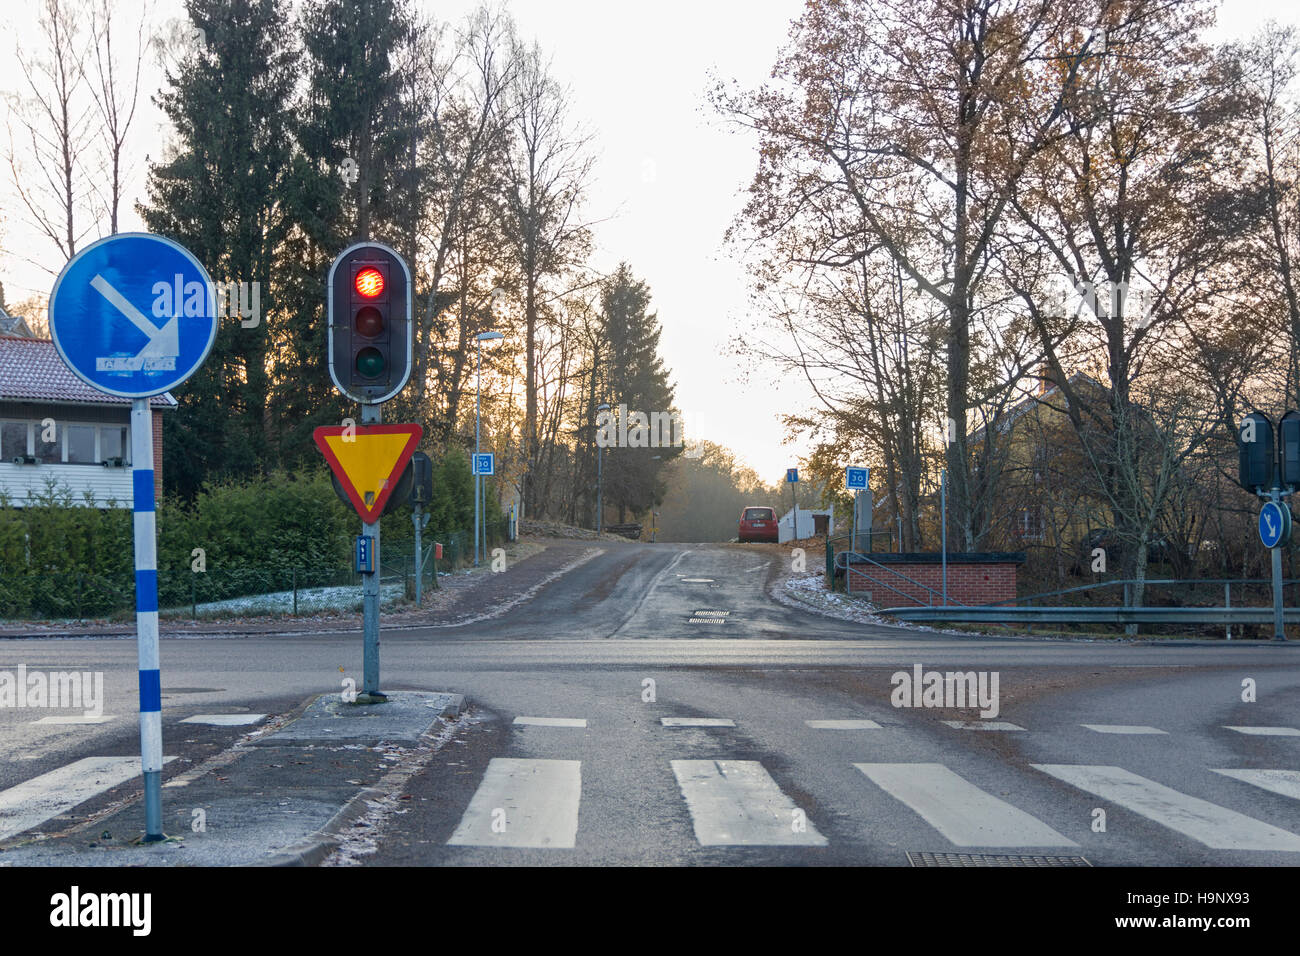 Street intersection with no traffic and traffic lights on red. Floda, Sweden  Model Release: No.  Property Release: - Stock Image